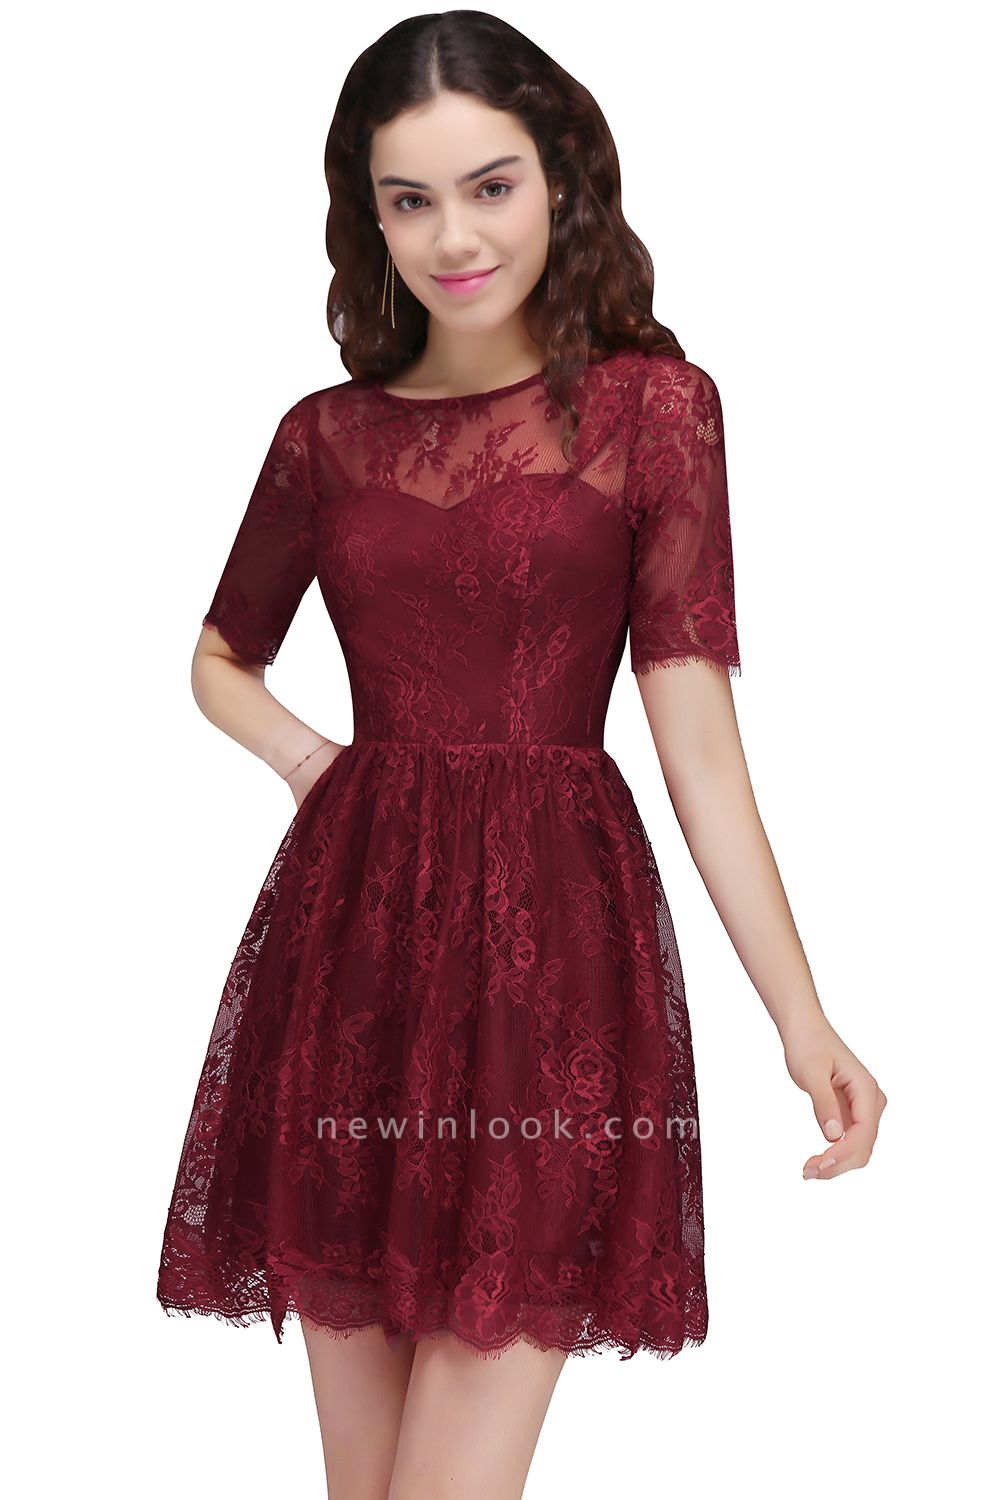 BRITTANY | Quinceanera Round Neck Short Lace Burgundy Dama Dresses